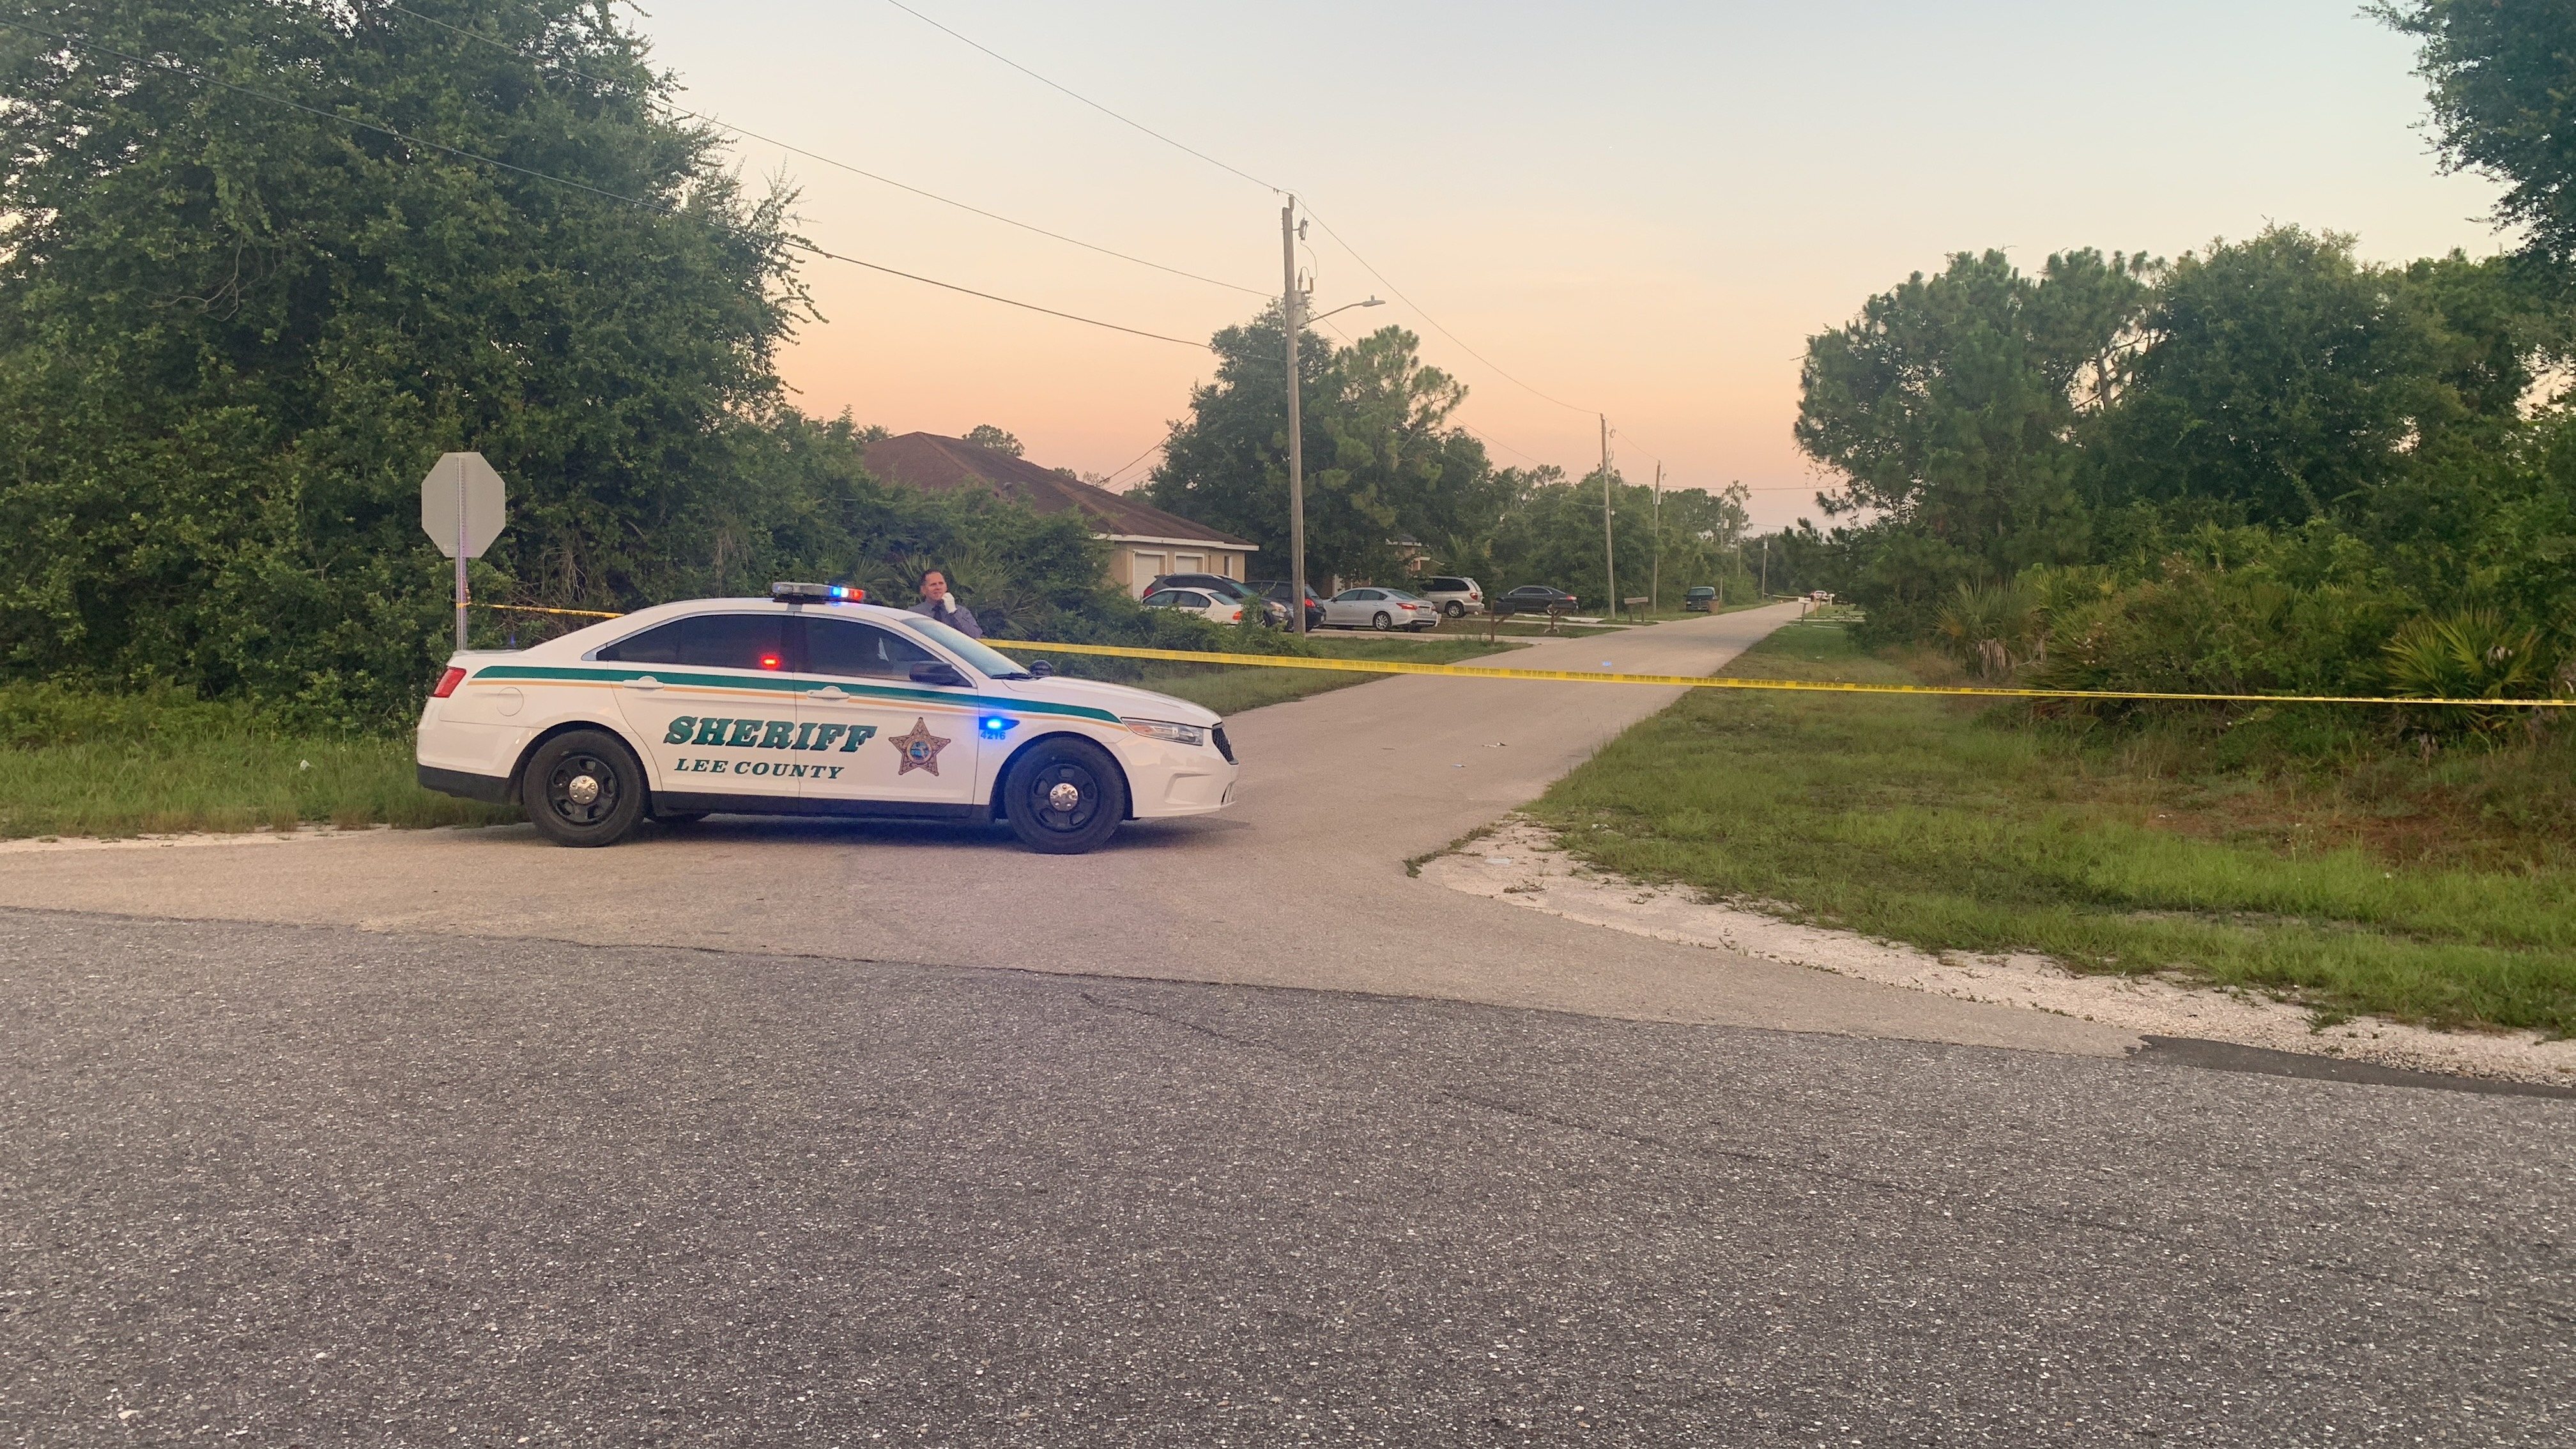 Investigators respond to reported sexual battery in Lehigh Acres